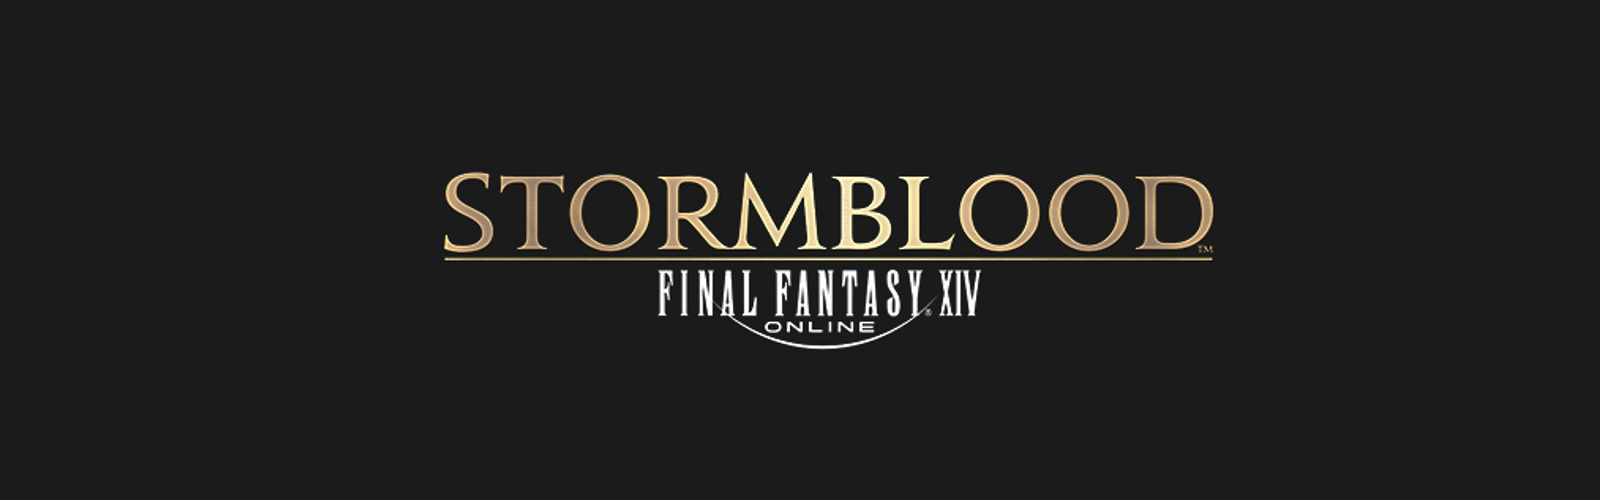 Mog Station Login >> FINAL FANTASY XIV: Stormblood Early Access Details | The ...